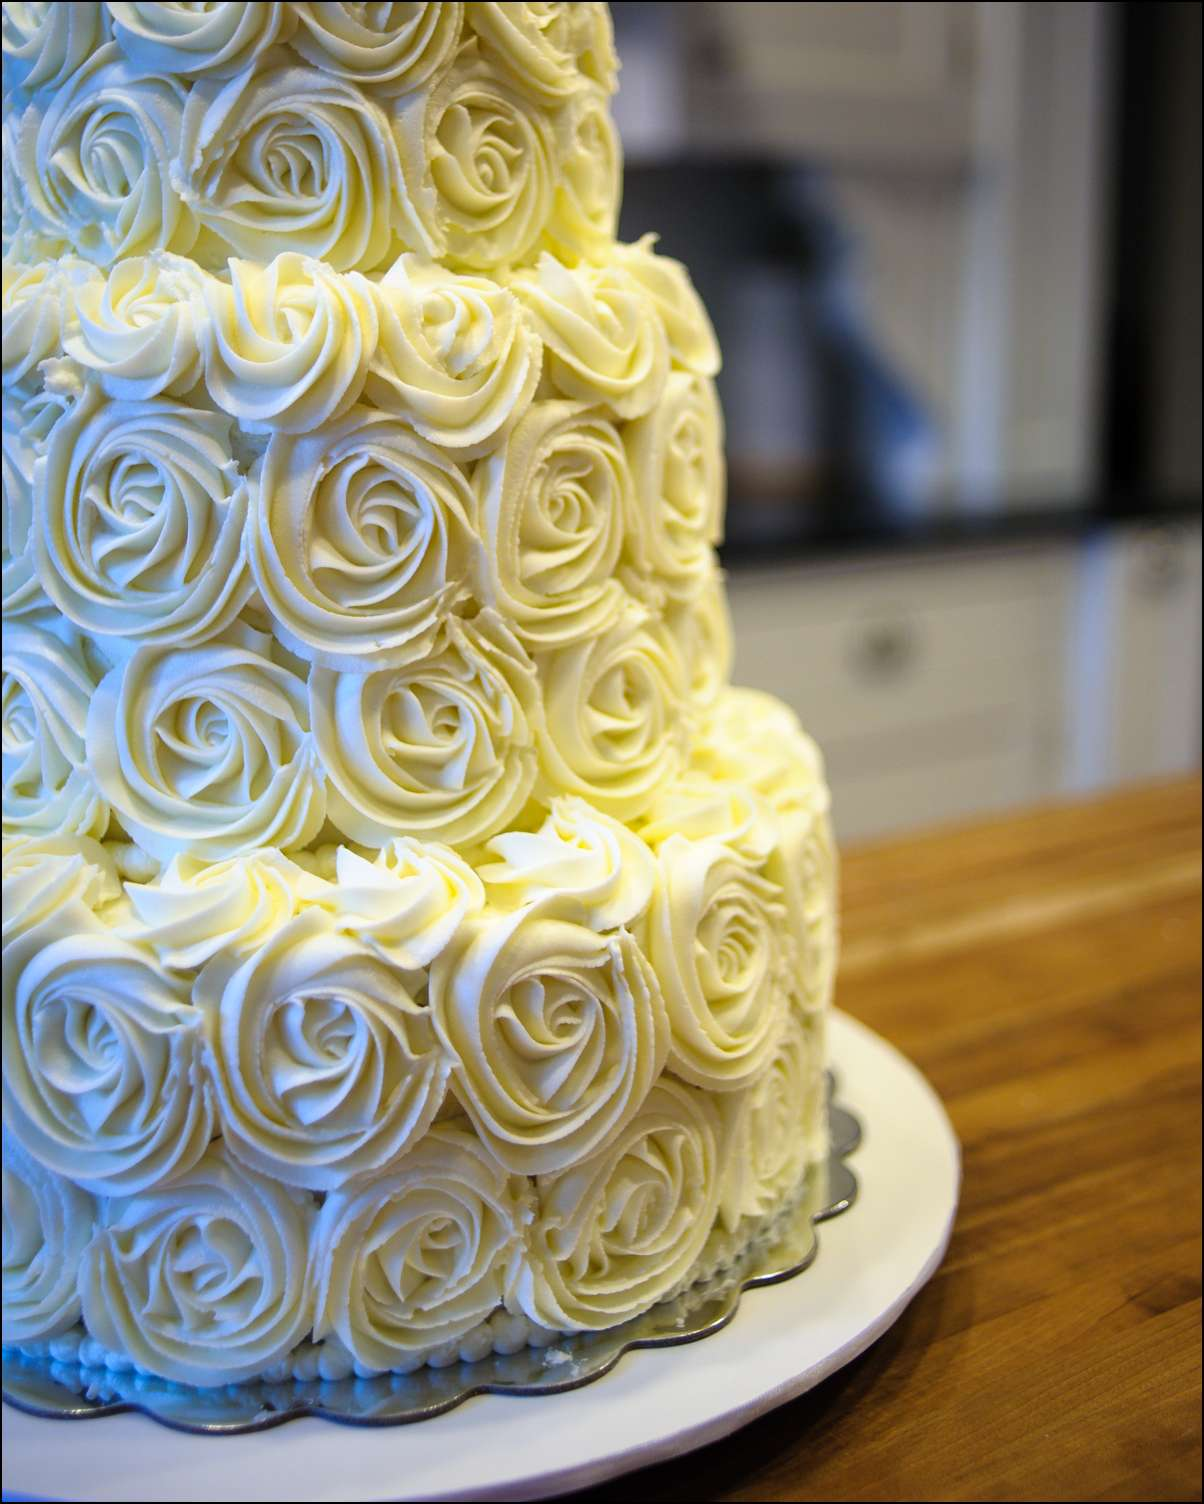 Tiered Rosette Wedding Cake | Gray Barn Baking